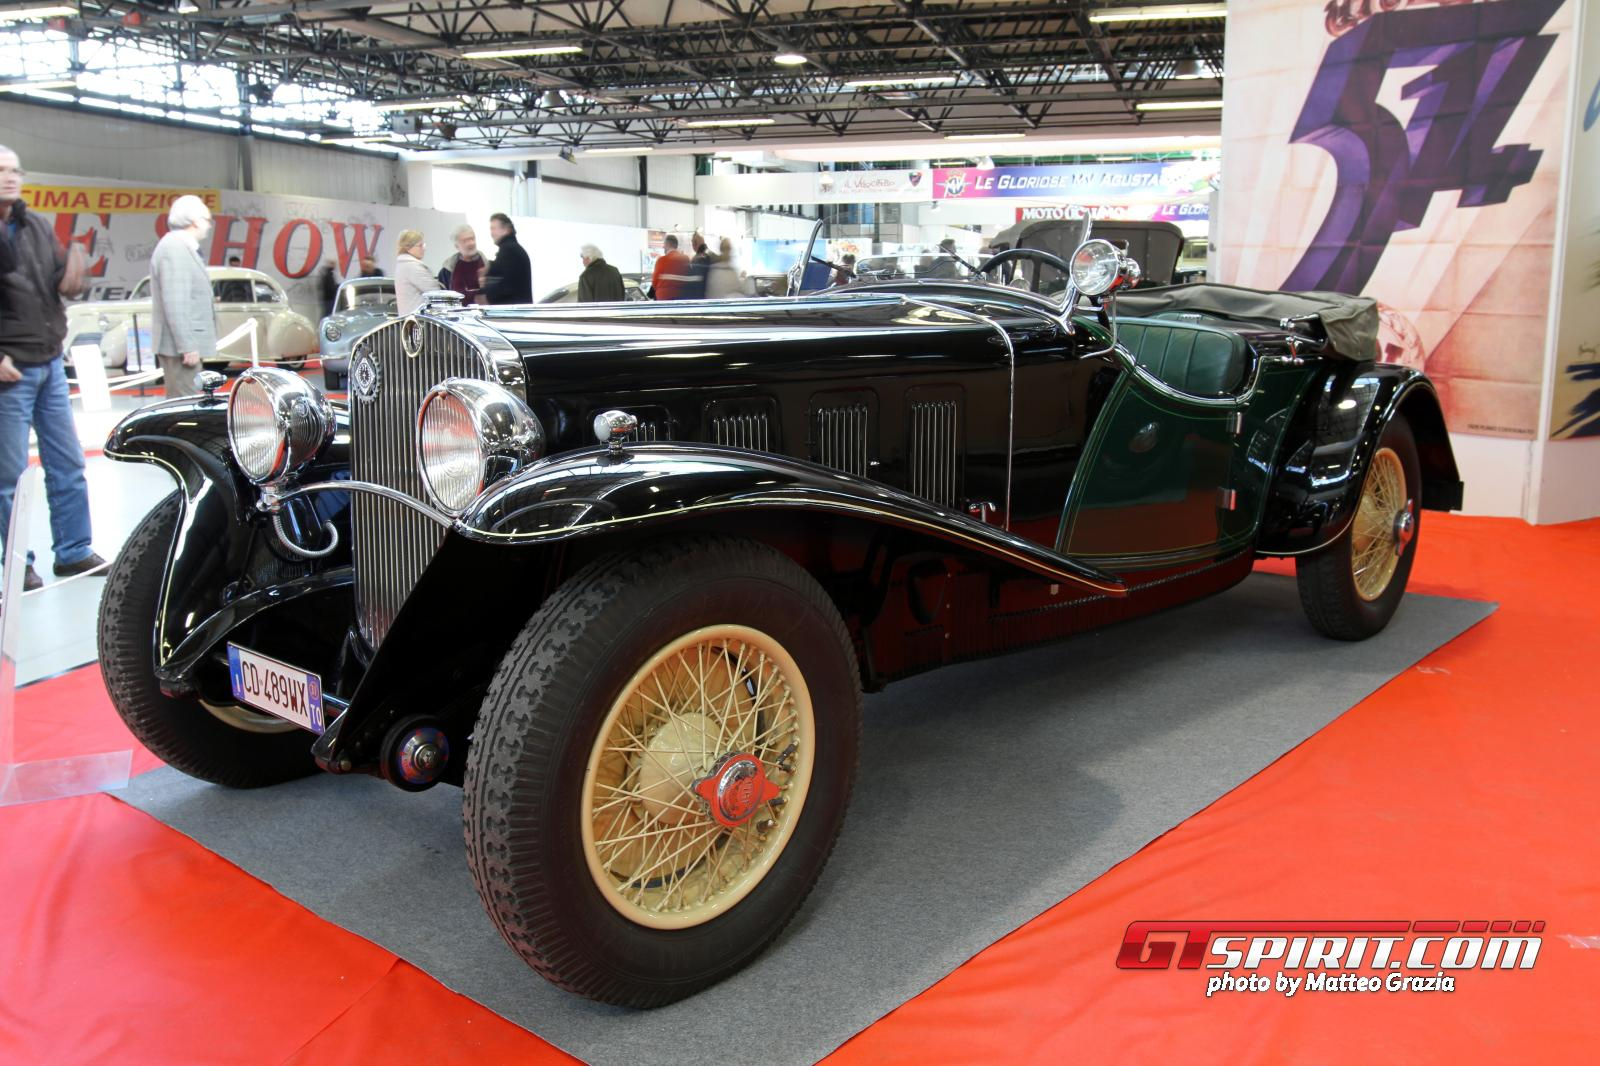 Gallery: Old Time Show 2013 in Emilia Romagna Italy - GTspirit